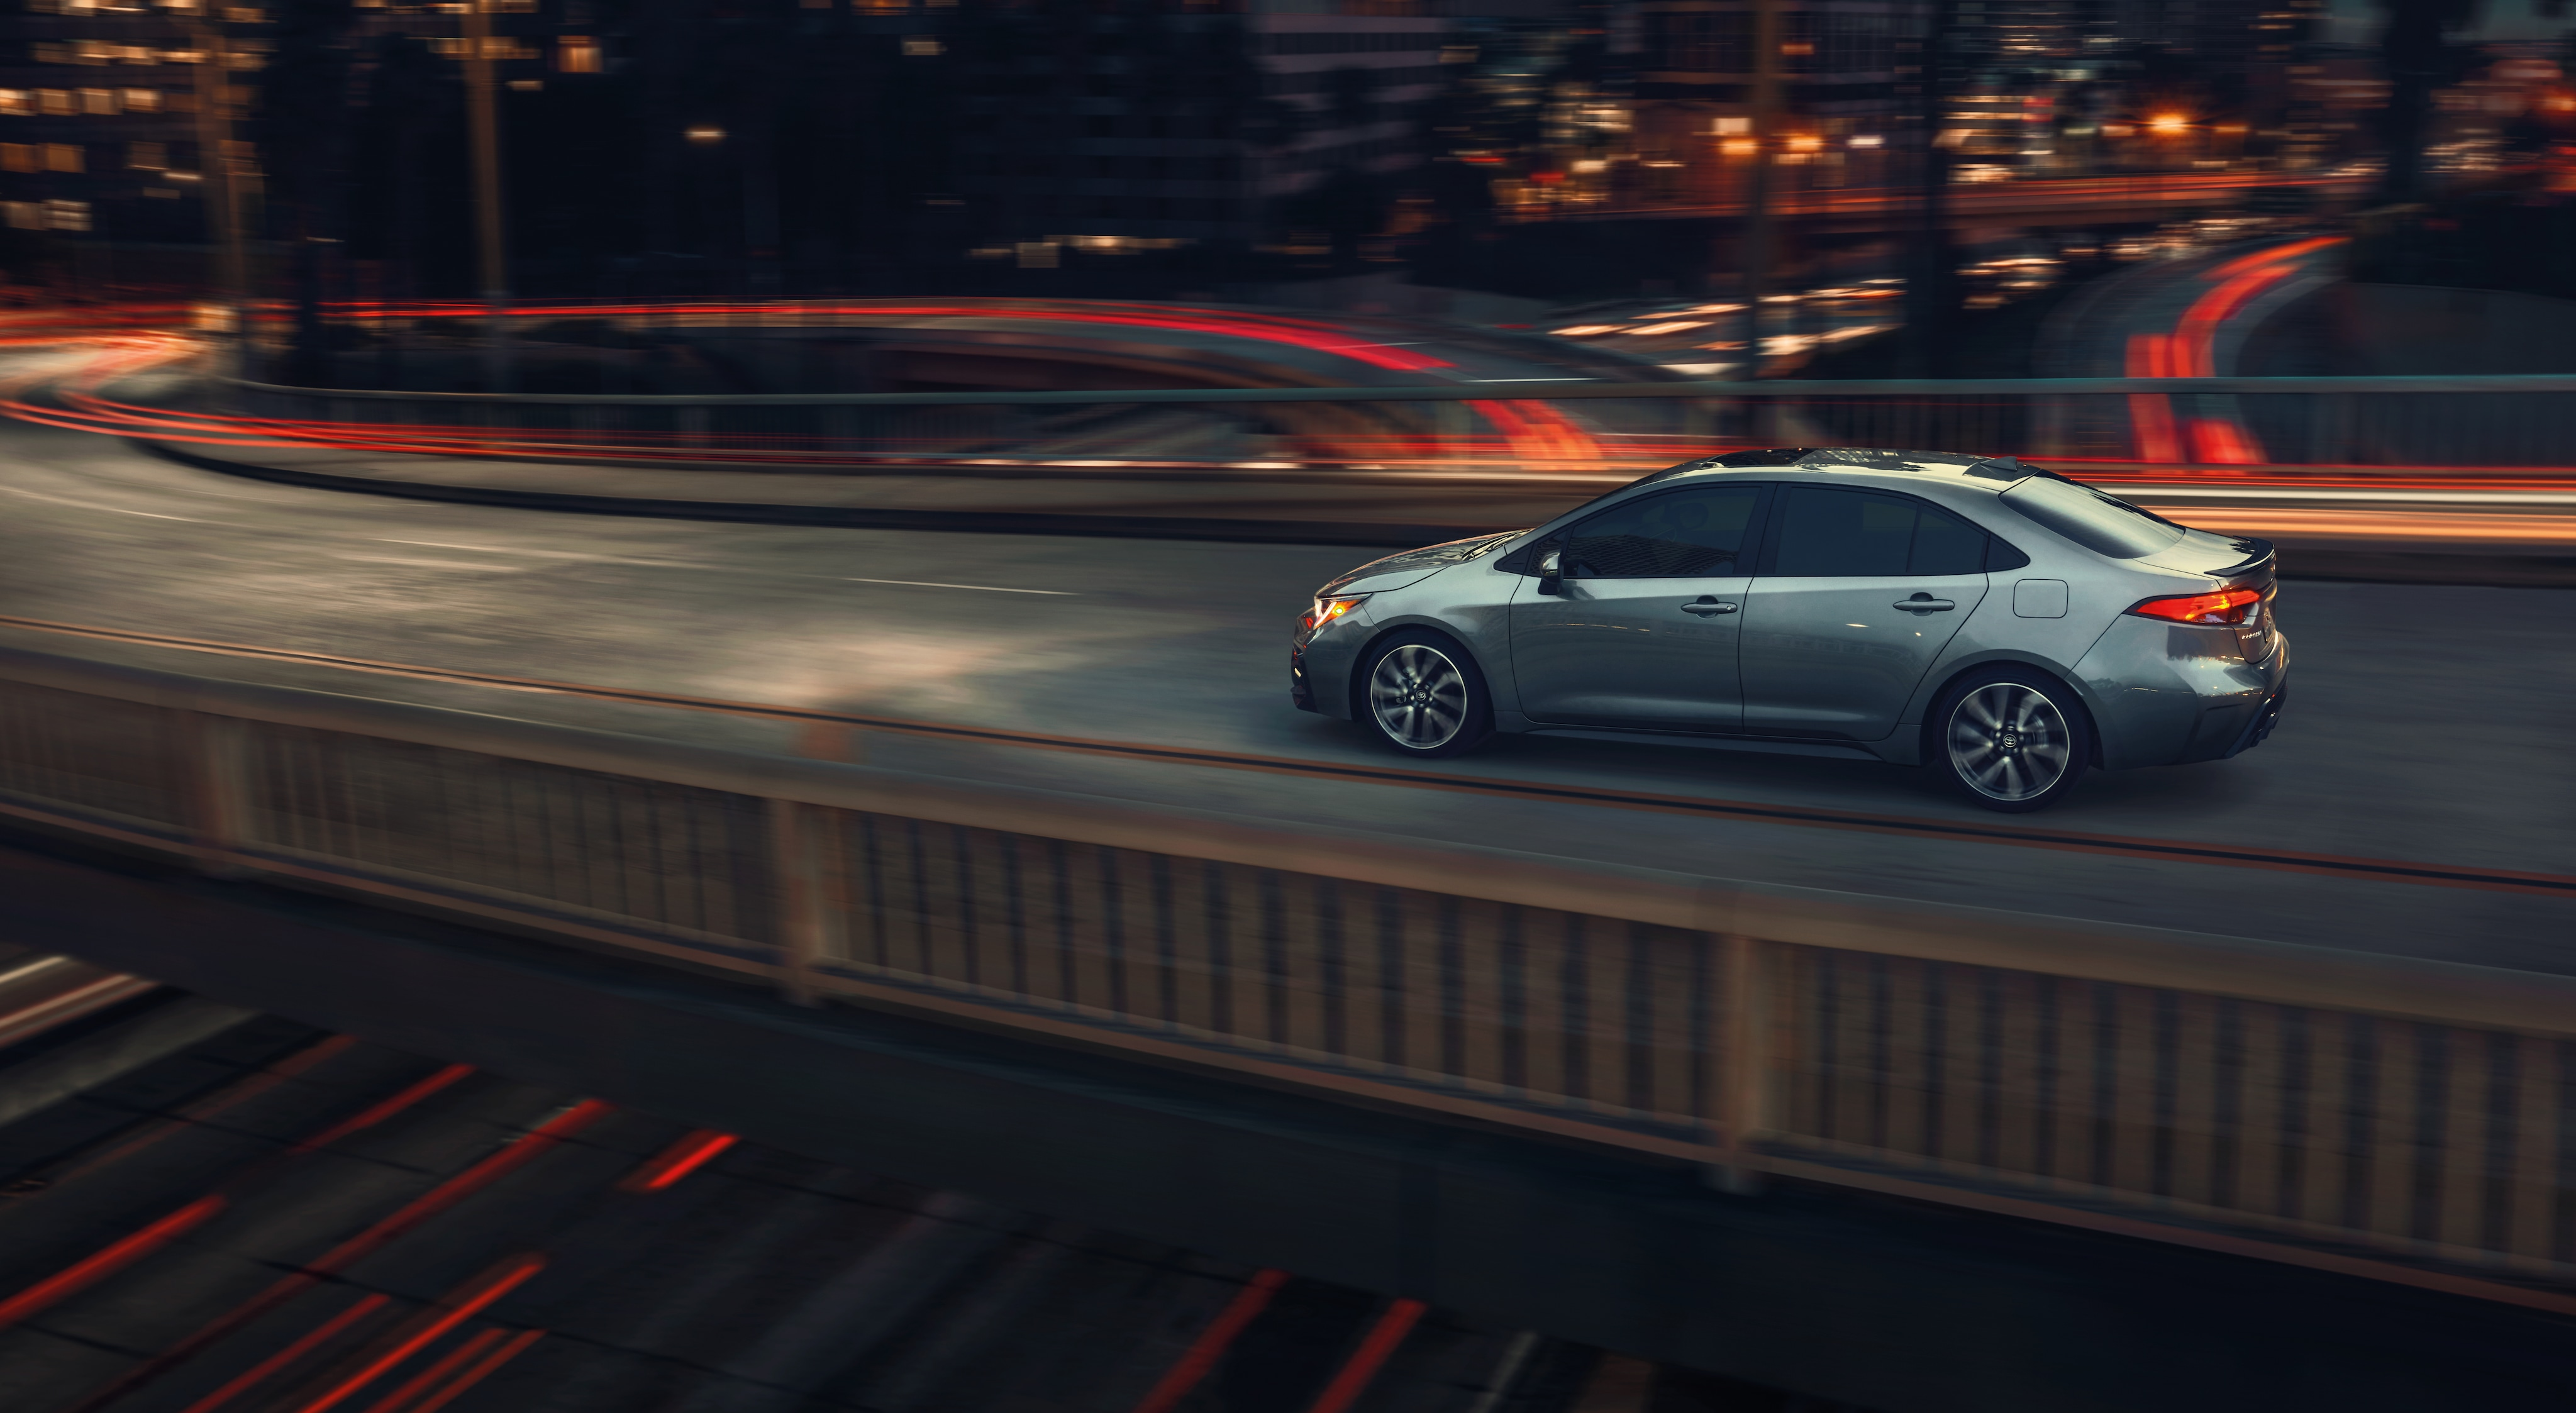 Boch Toyota is a Family Owned Dealership near Boston, MA | 2020 Toyota Corolla driving on city skyway at night